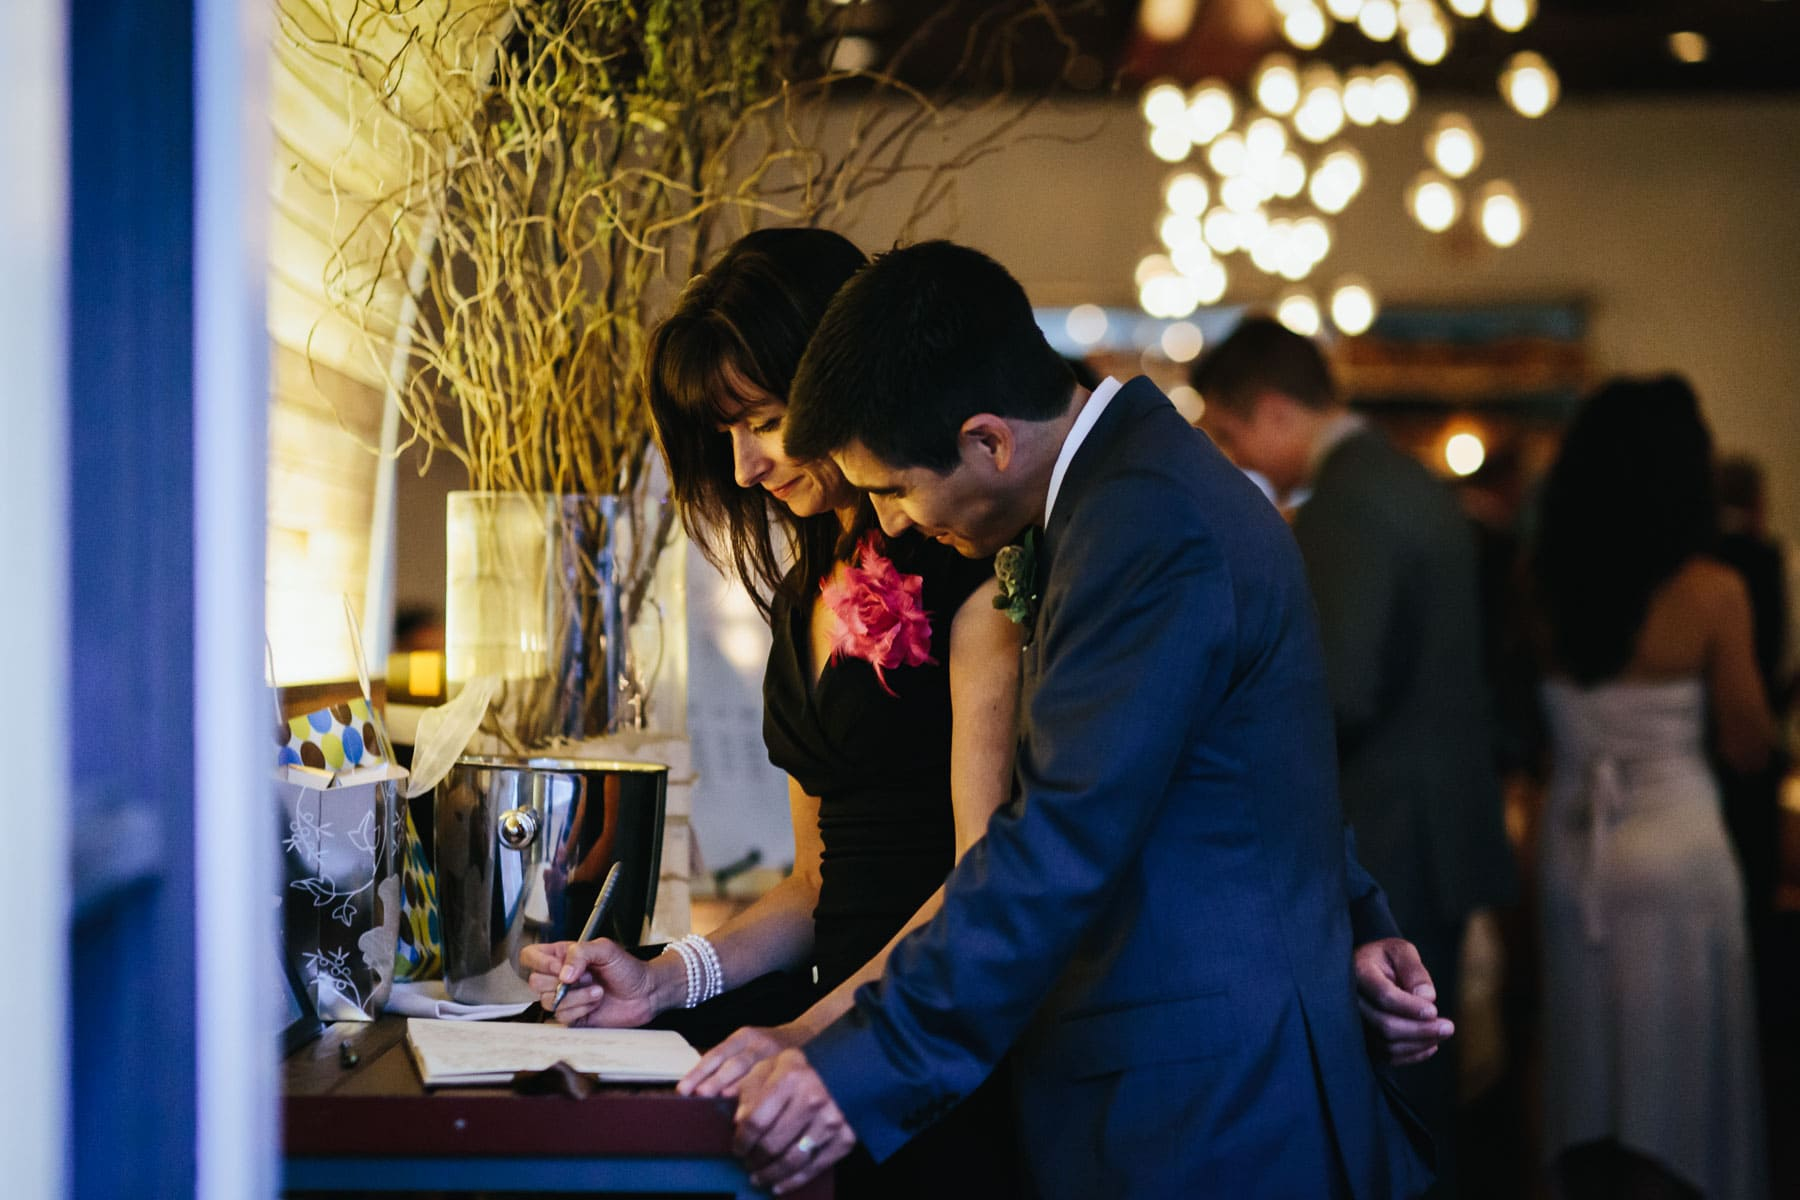 The best man and his wife sign the wedding guest book at the front door at this Splendido Restaurant wedding reception.